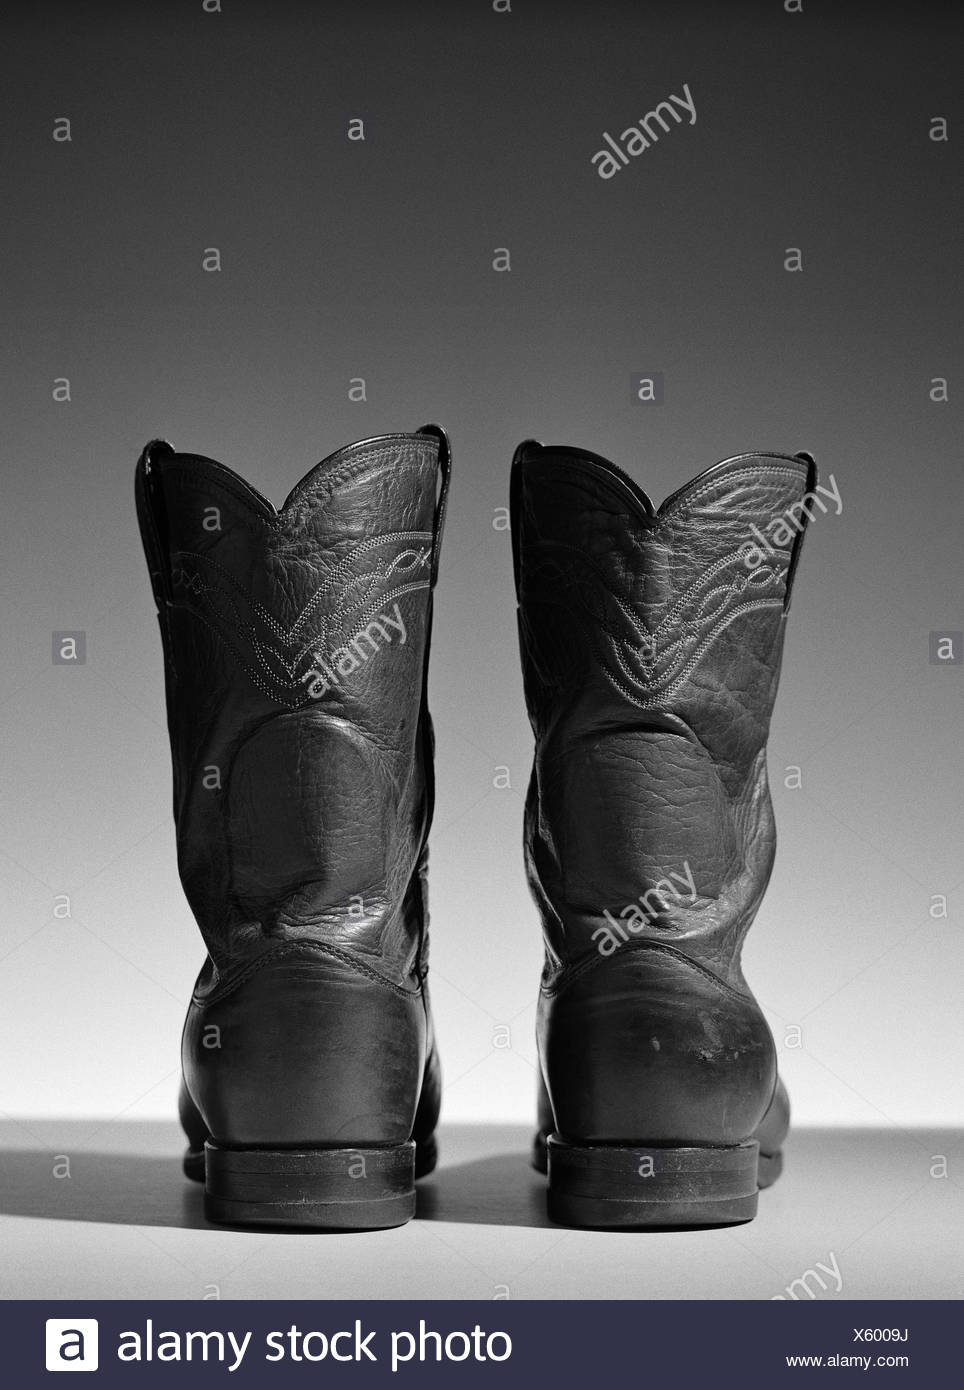 Leather cowboy boots, close-up - Stock Image